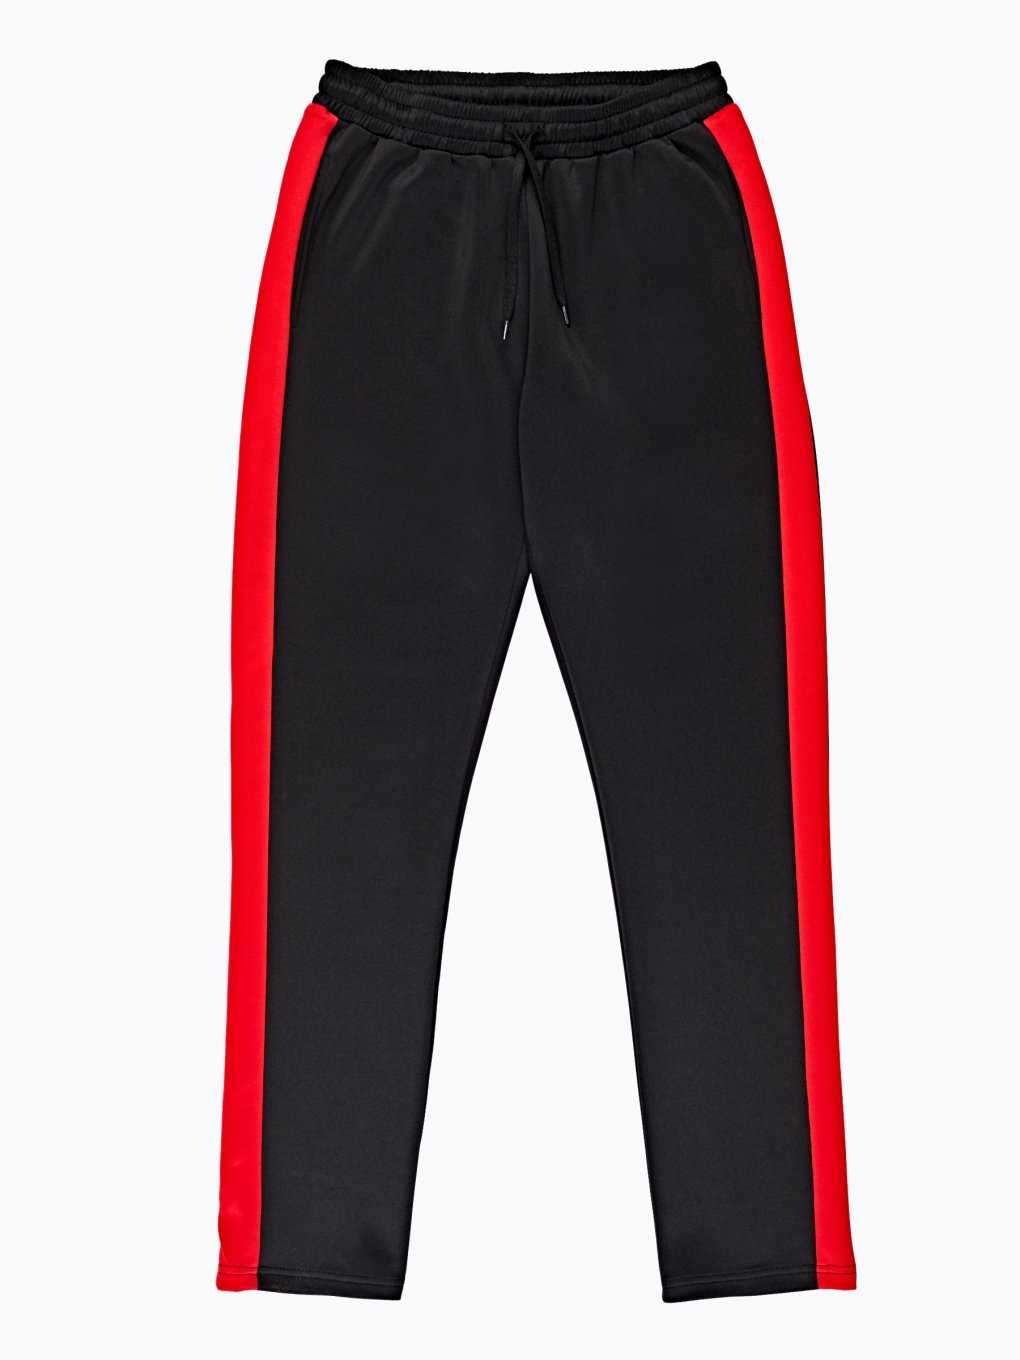 STRAIGHT SLIM TROUSERS WITH CONTRAST SIDE STRIPE